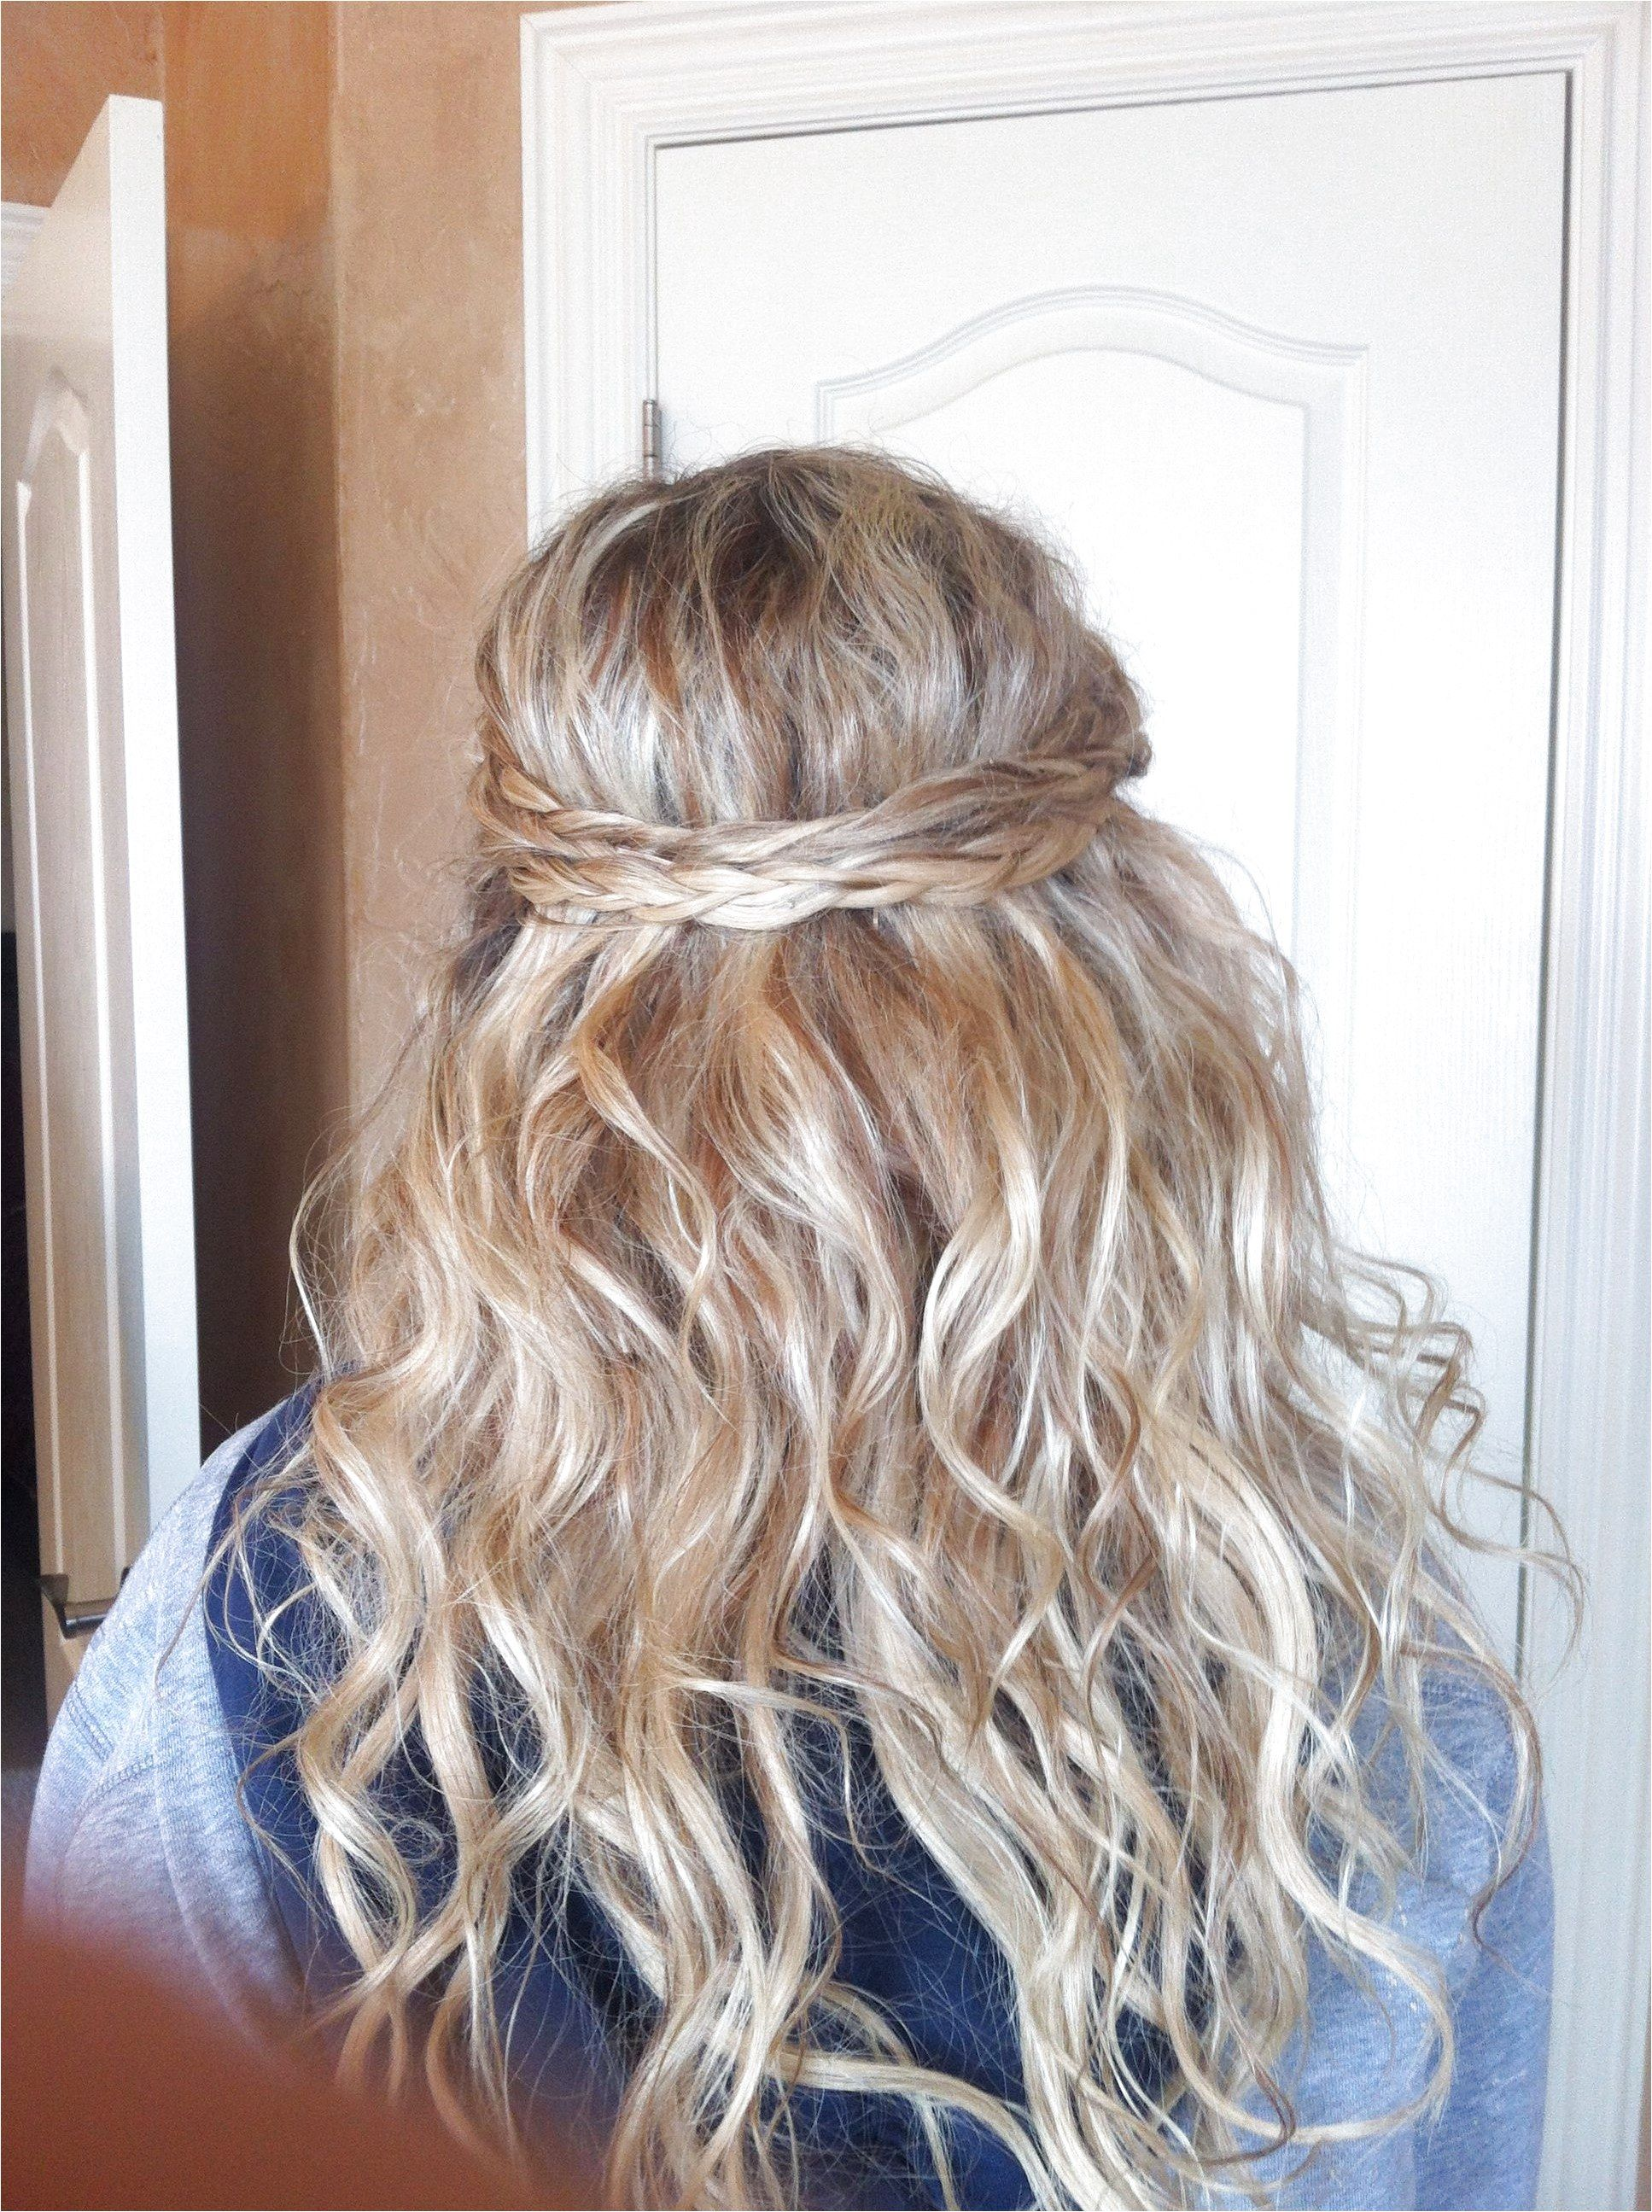 prom hair. half up half down with braids and extensions